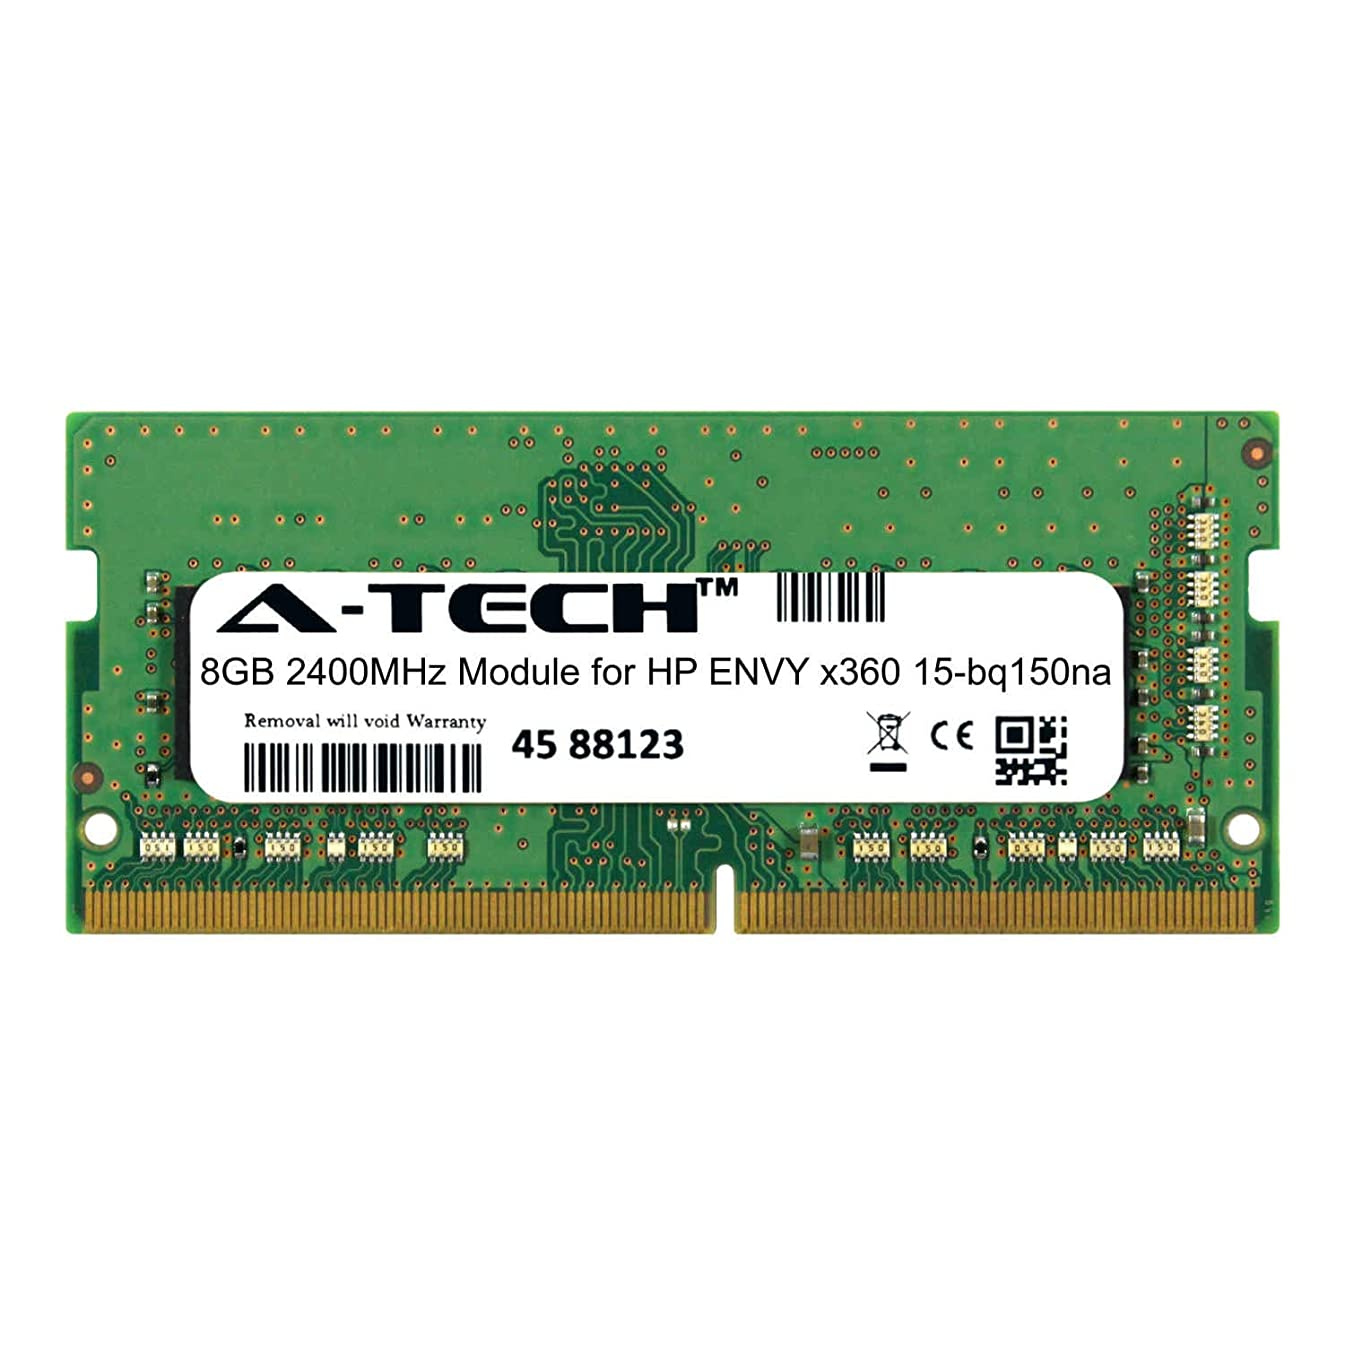 A-Tech 8GB Module for HP Envy x360 15-bq150na Laptop & Notebook Compatible DDR4 2400Mhz Memory Ram (ATMS274541A25827X1)